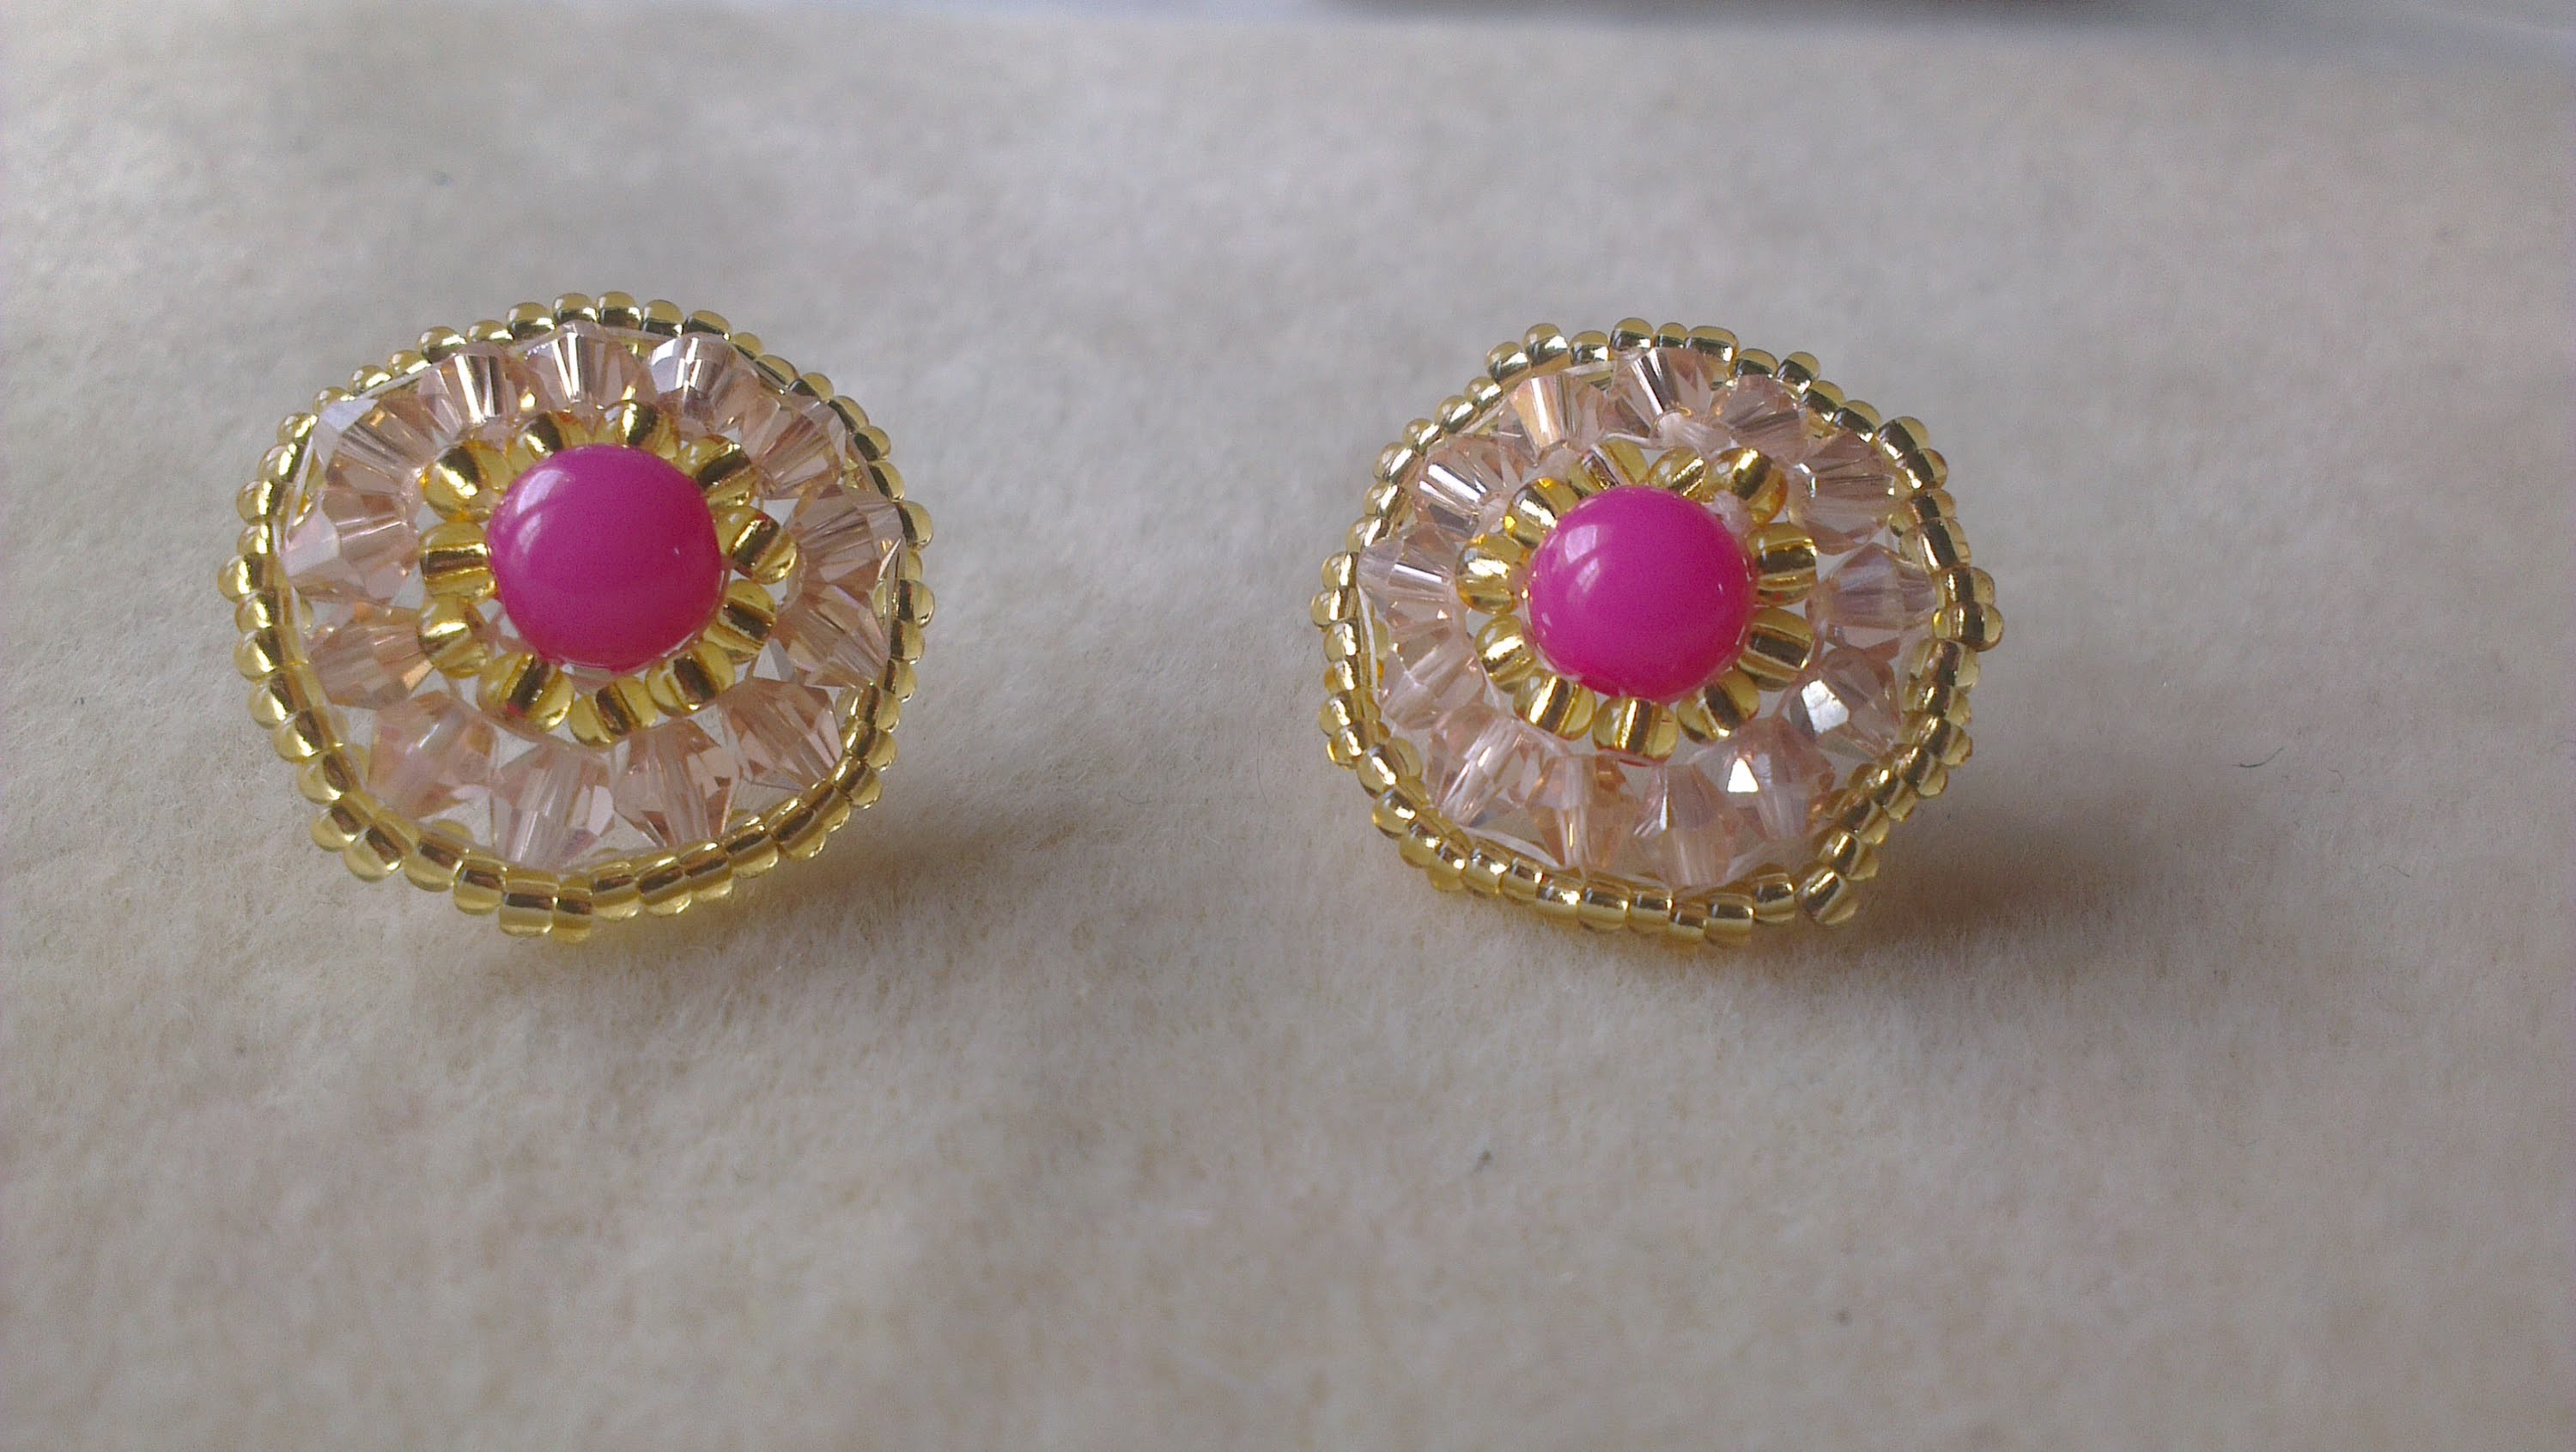 PENDIENTES ROSA Y ORO - PINK AND GOLD EARRINGS